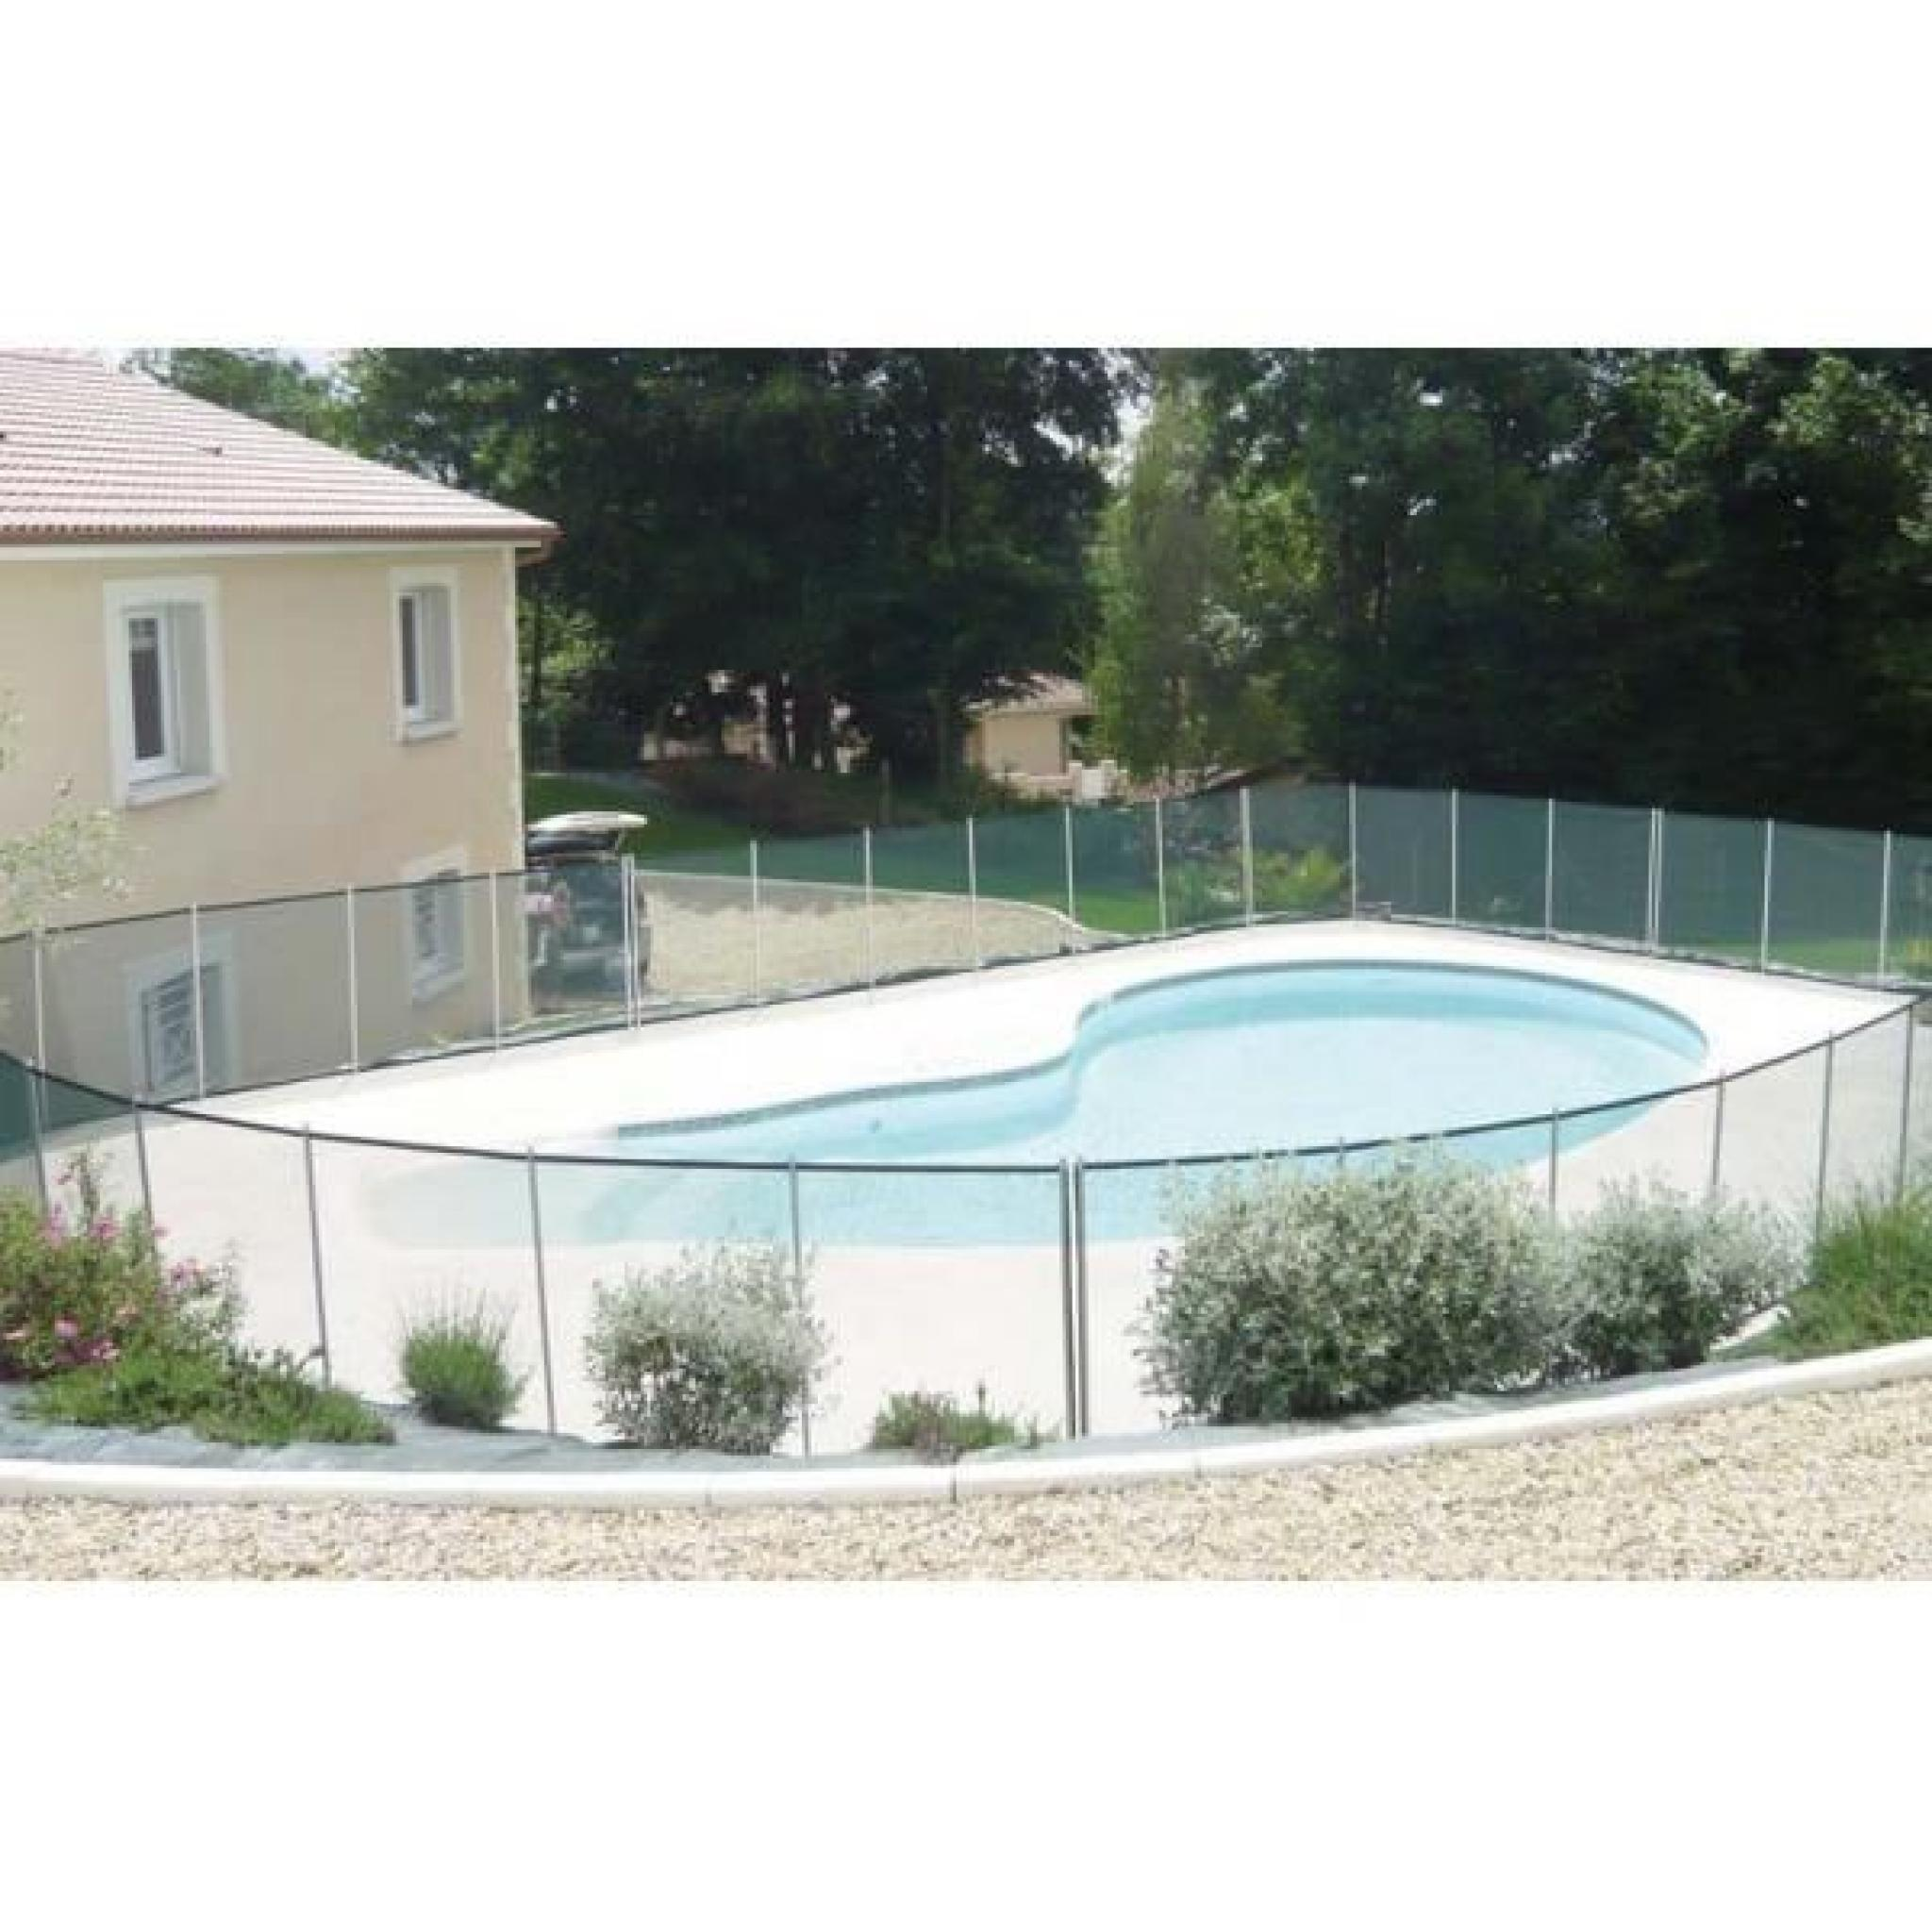 barriere de piscine beethoven noire piquets noirs 8 On barriere de piscine beethoven